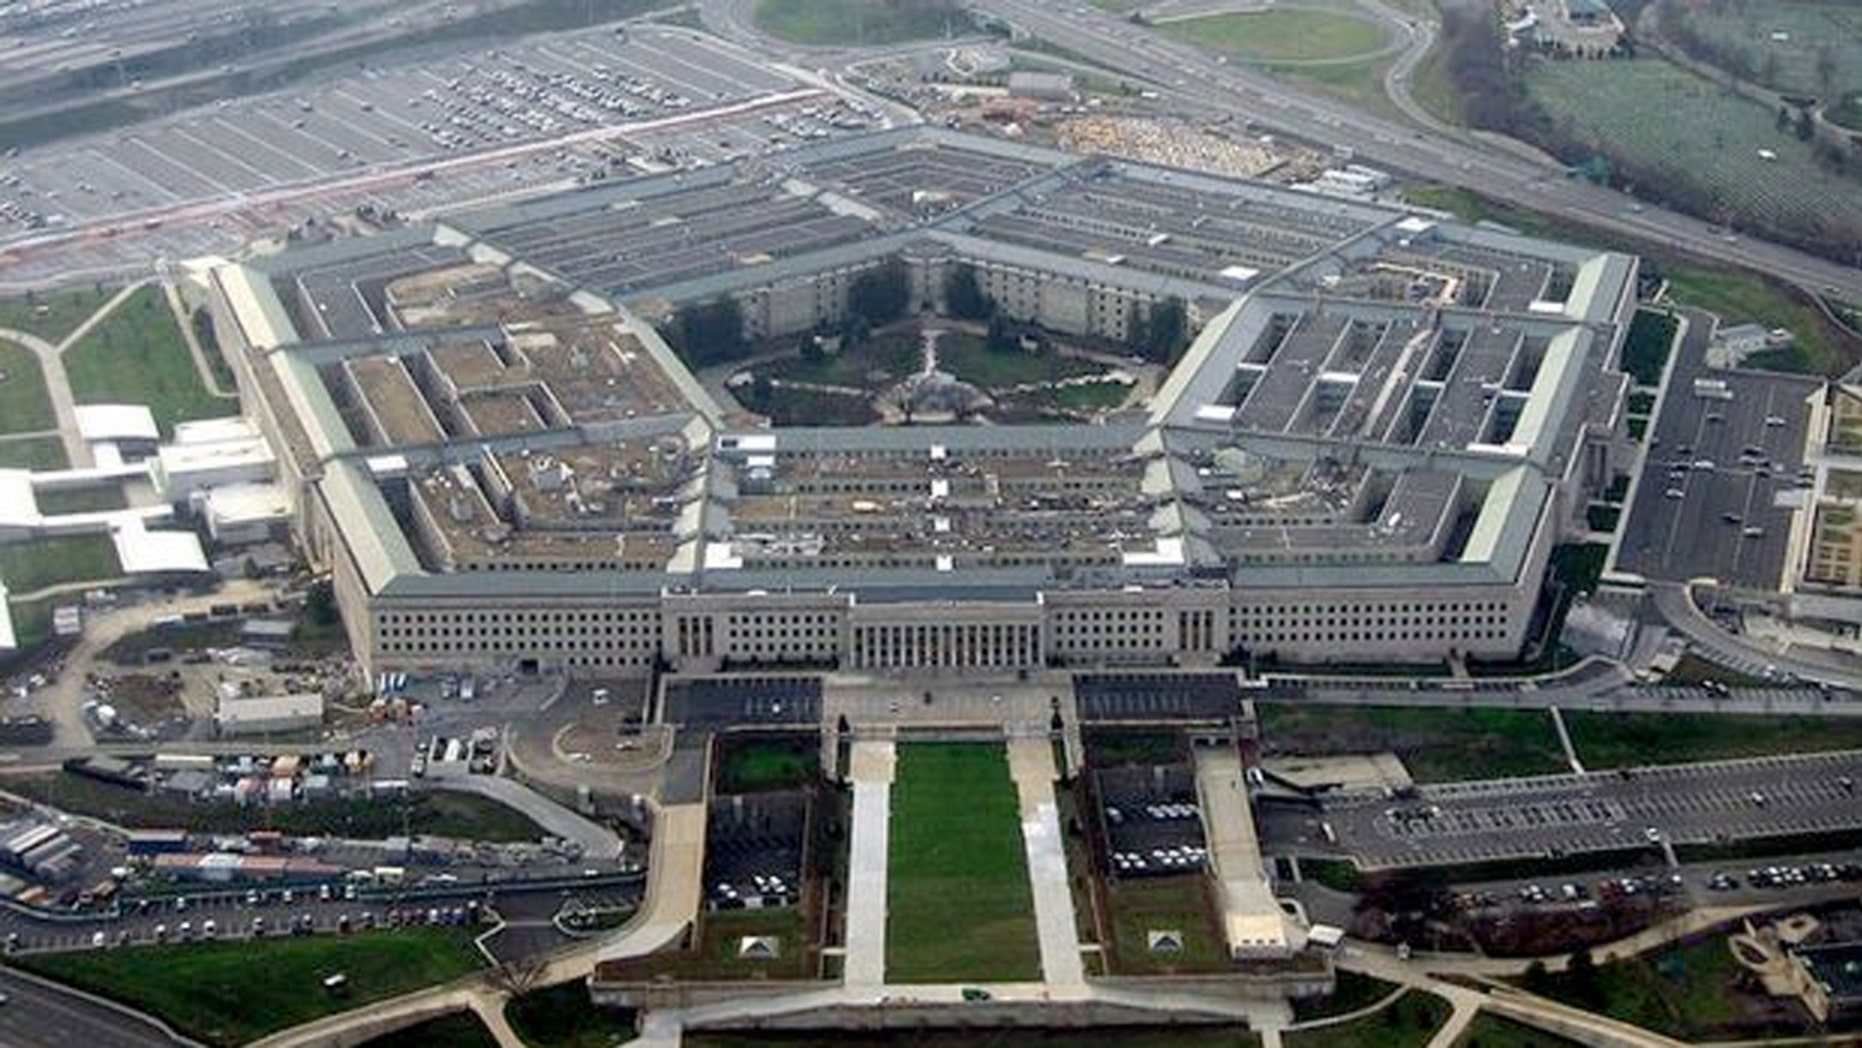 The Pentagon in Arlington, Virginia (above) was designed so a person to walk between any two points in the Pentagon in less than seven minutes